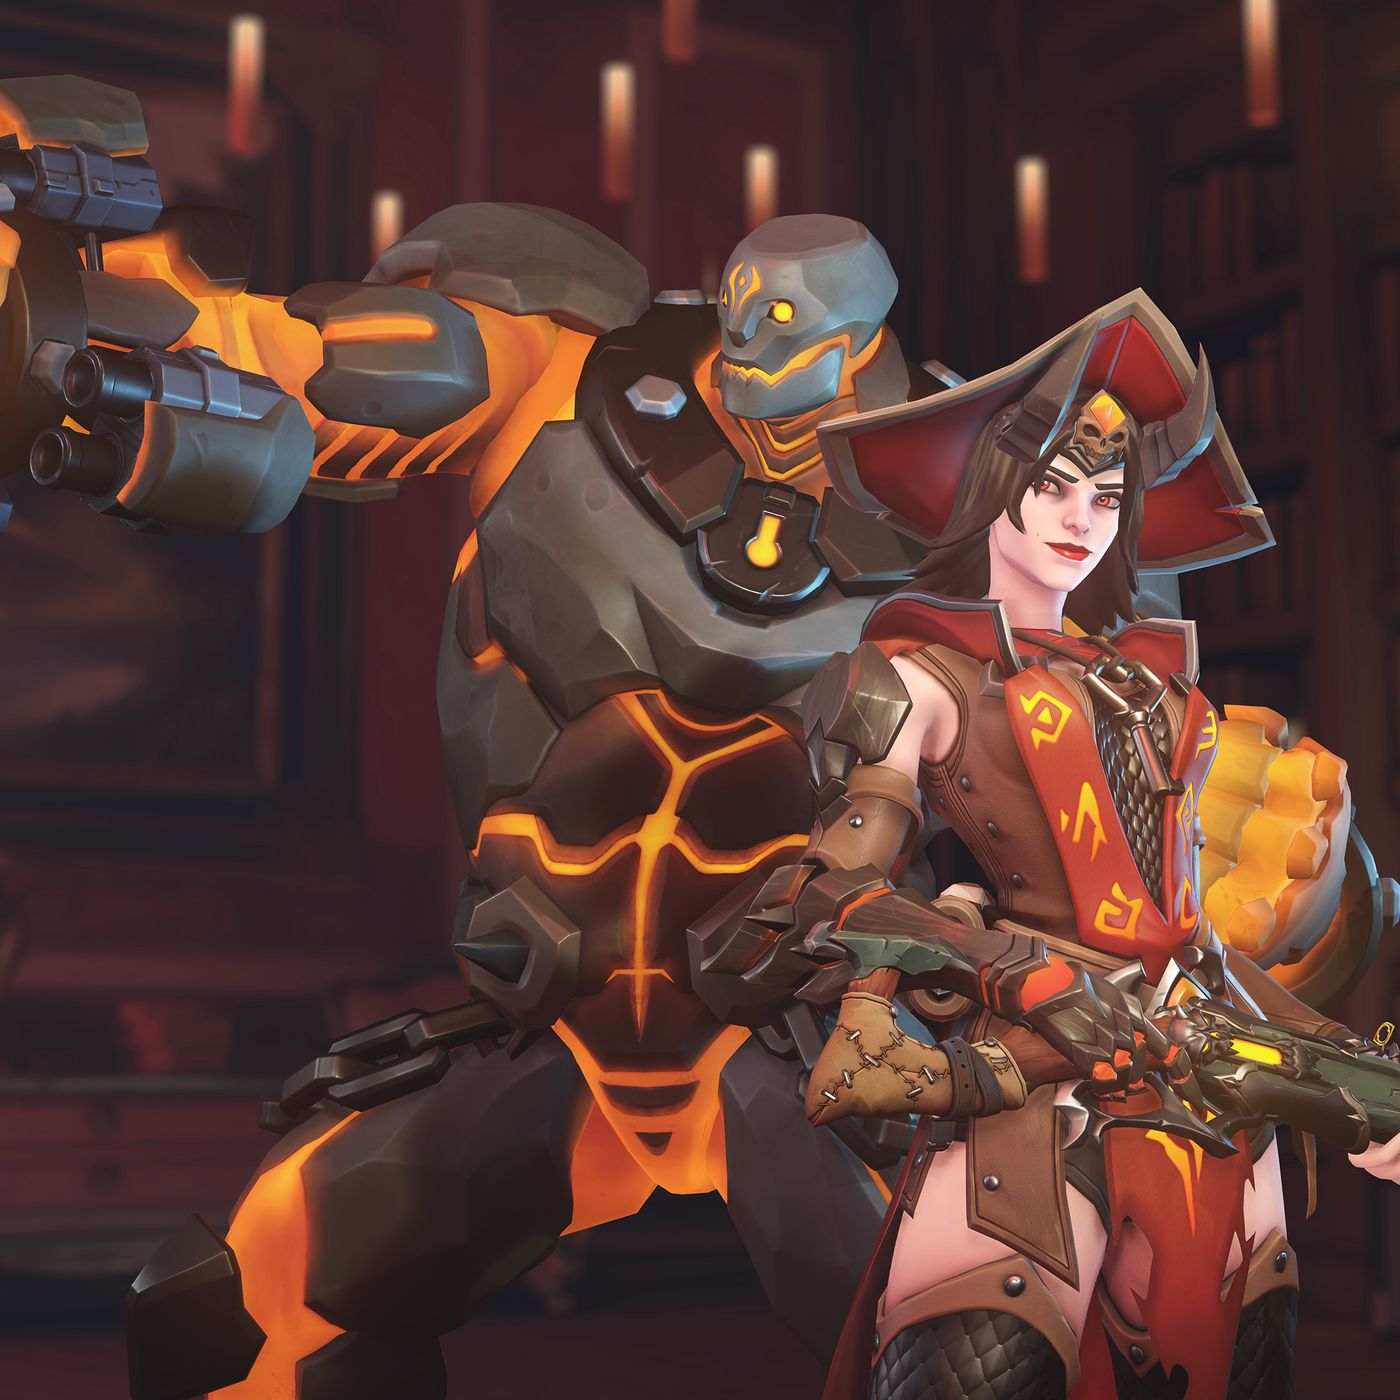 New Sprays Overwatch Halloween 2020 Overwatch Halloween Terror 2019: event dates, new skins revealed